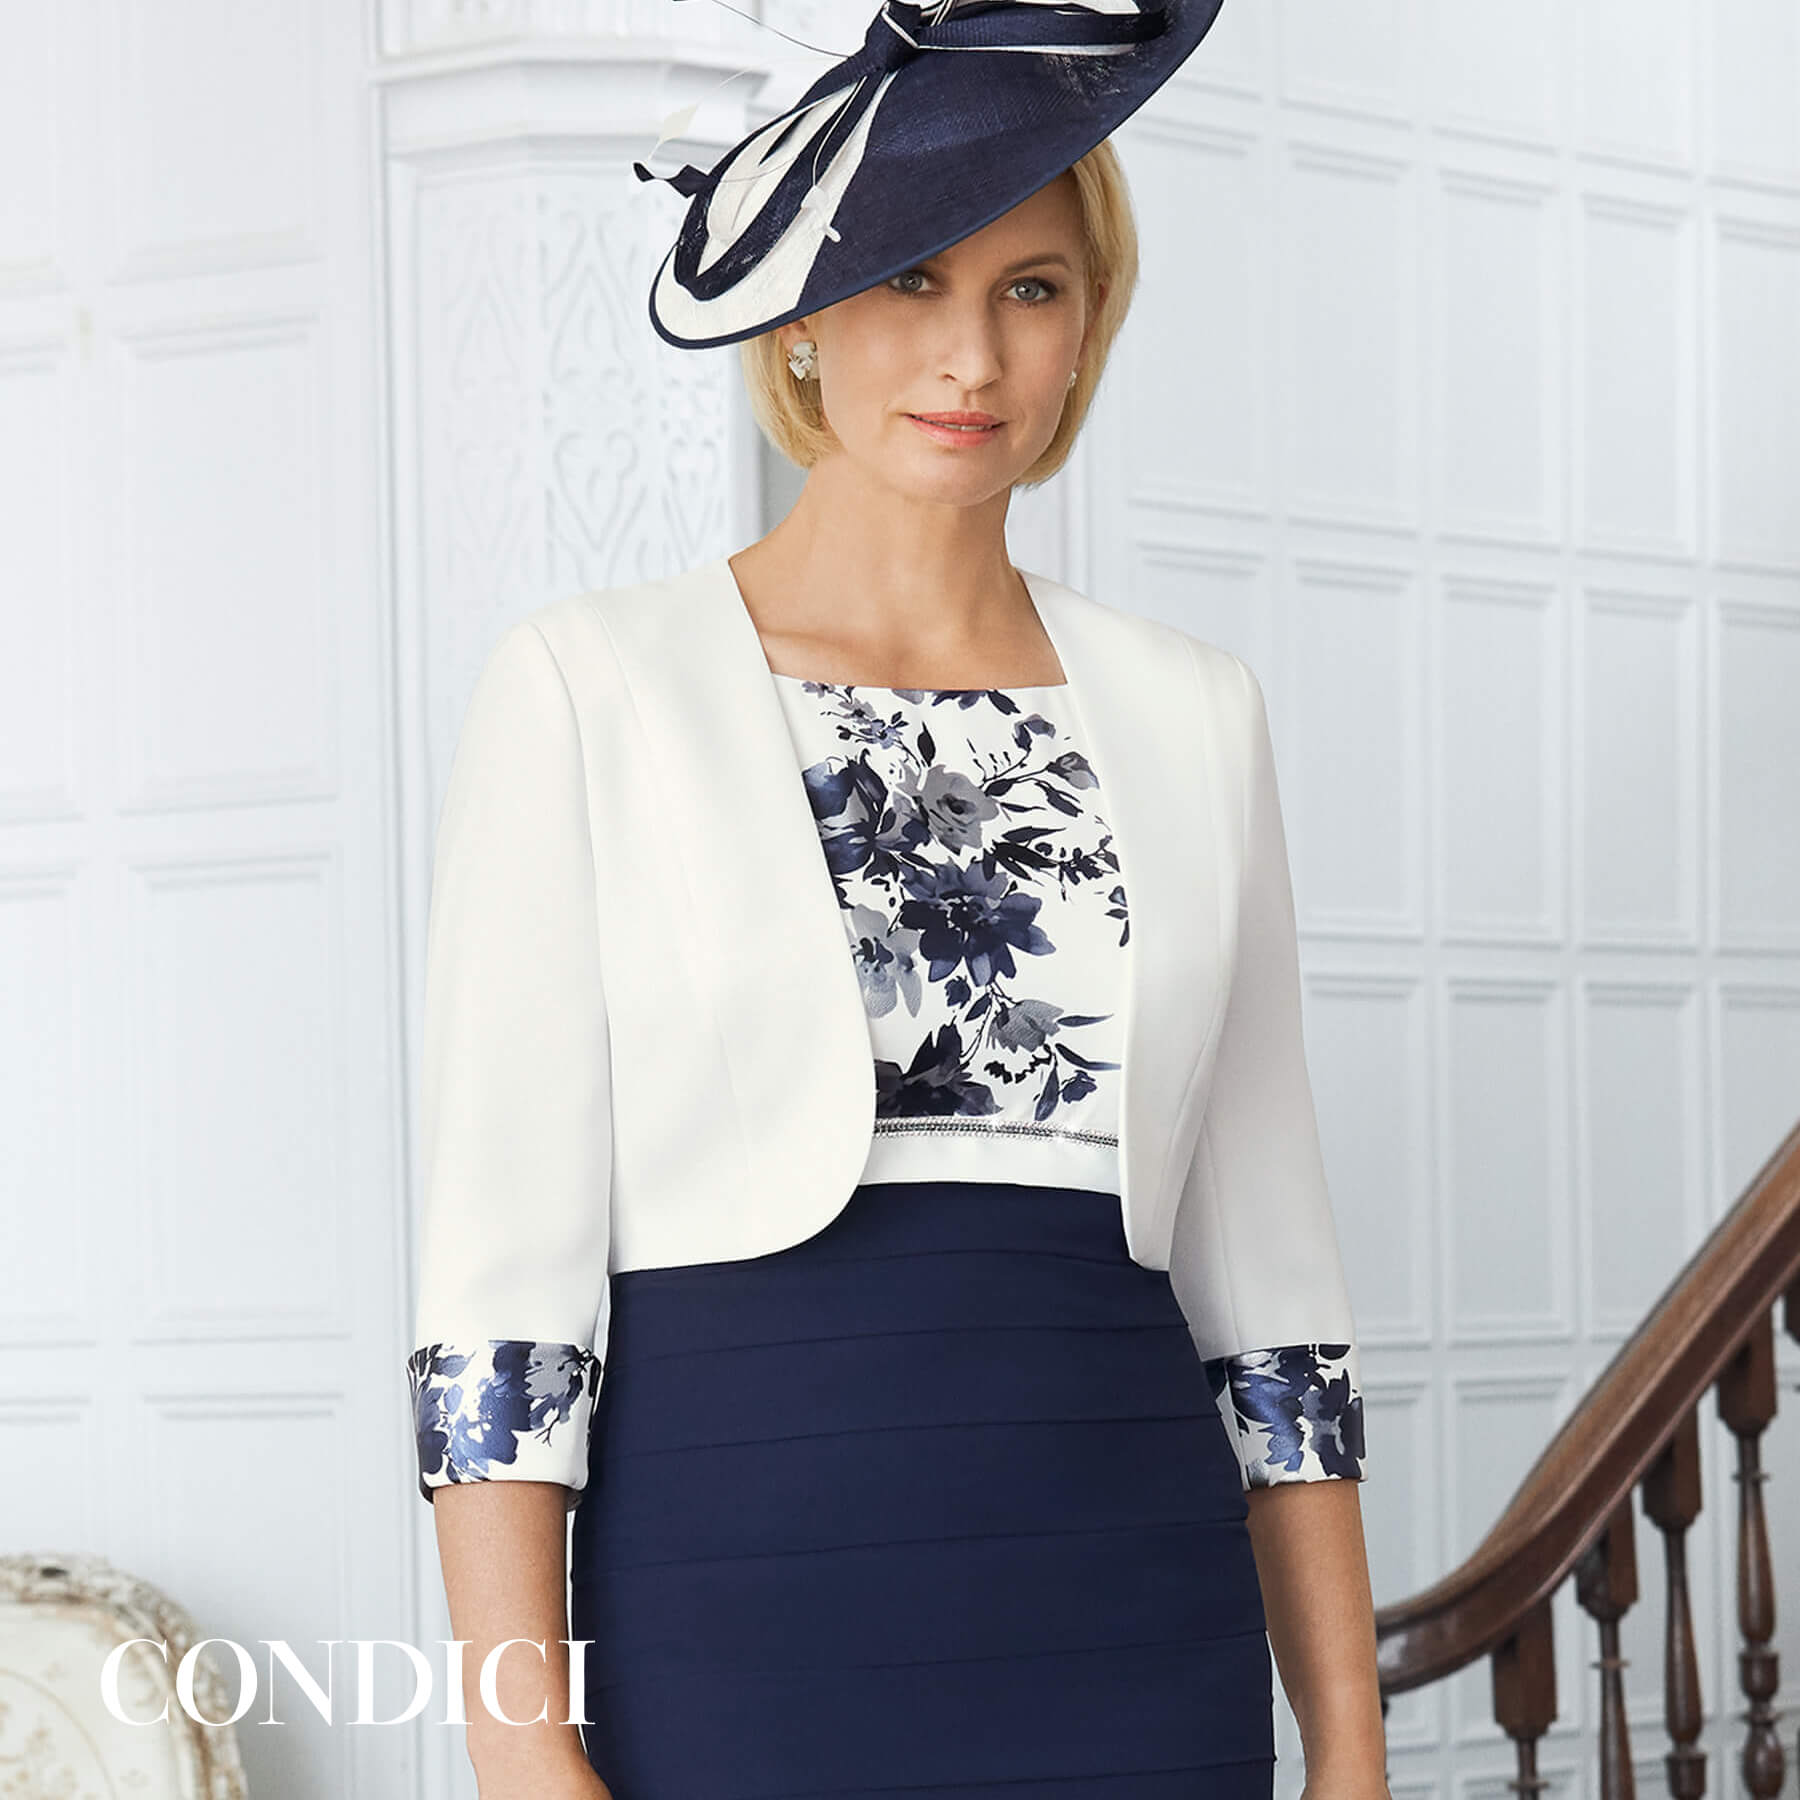 Condici occasionwear gets us in the mood for Spring